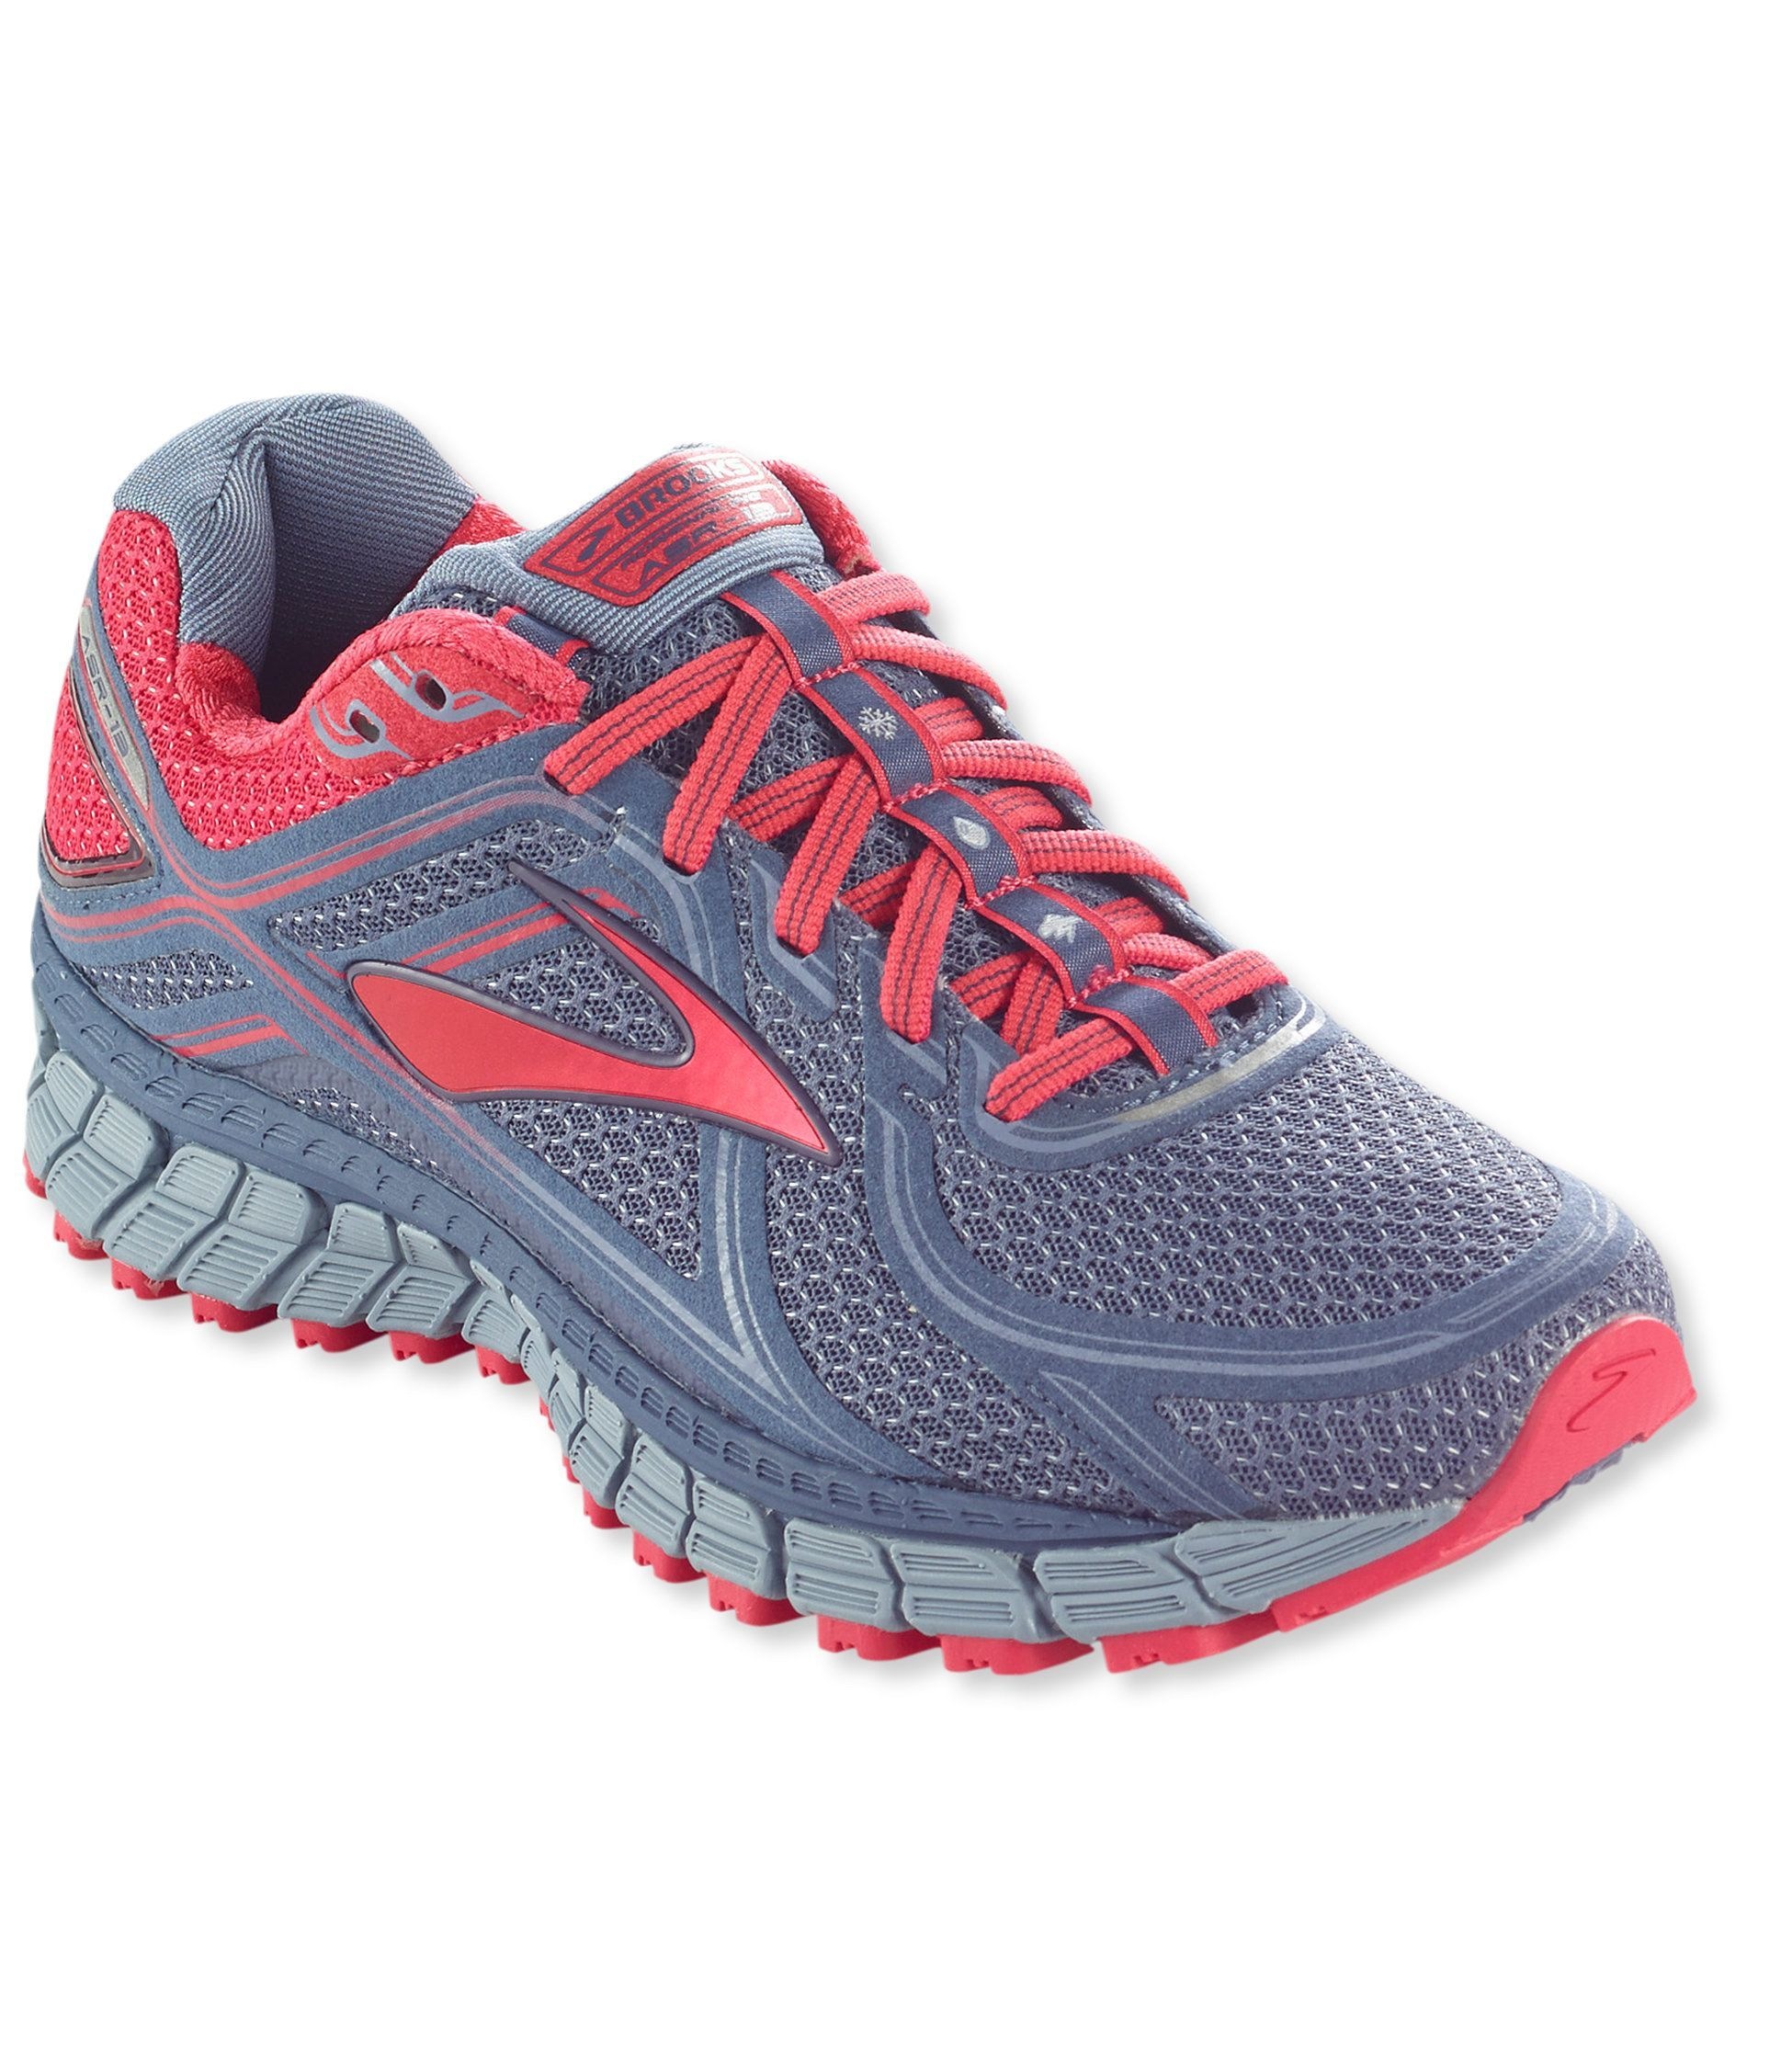 b03eb367f31 Women s Brooks Adrenaline Asr 13 Trail Running Shoes